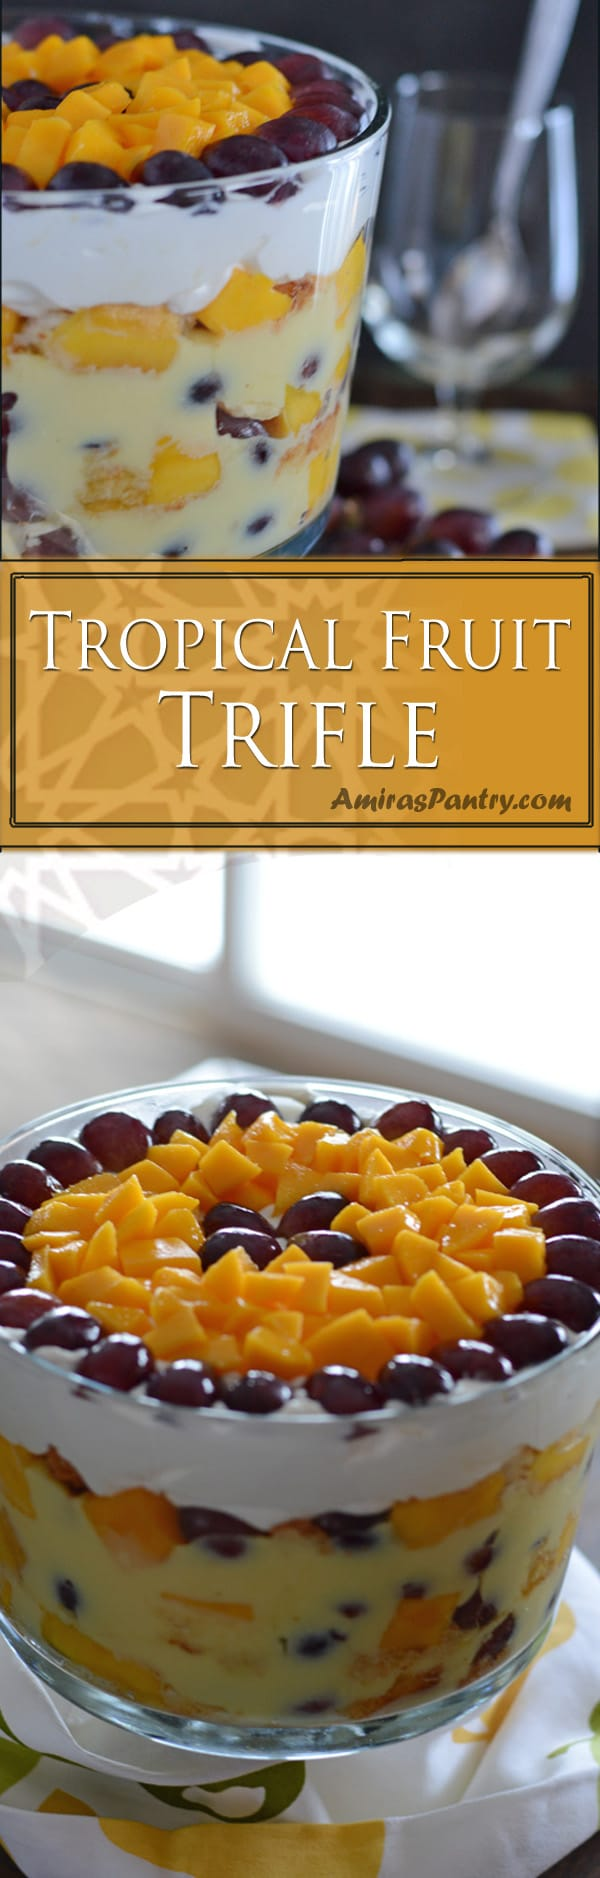 Layers of tropical fruits, cream and cake. Sweet, juicy and oh so delicious. The best way to welcome summer is to make a summer trifle.